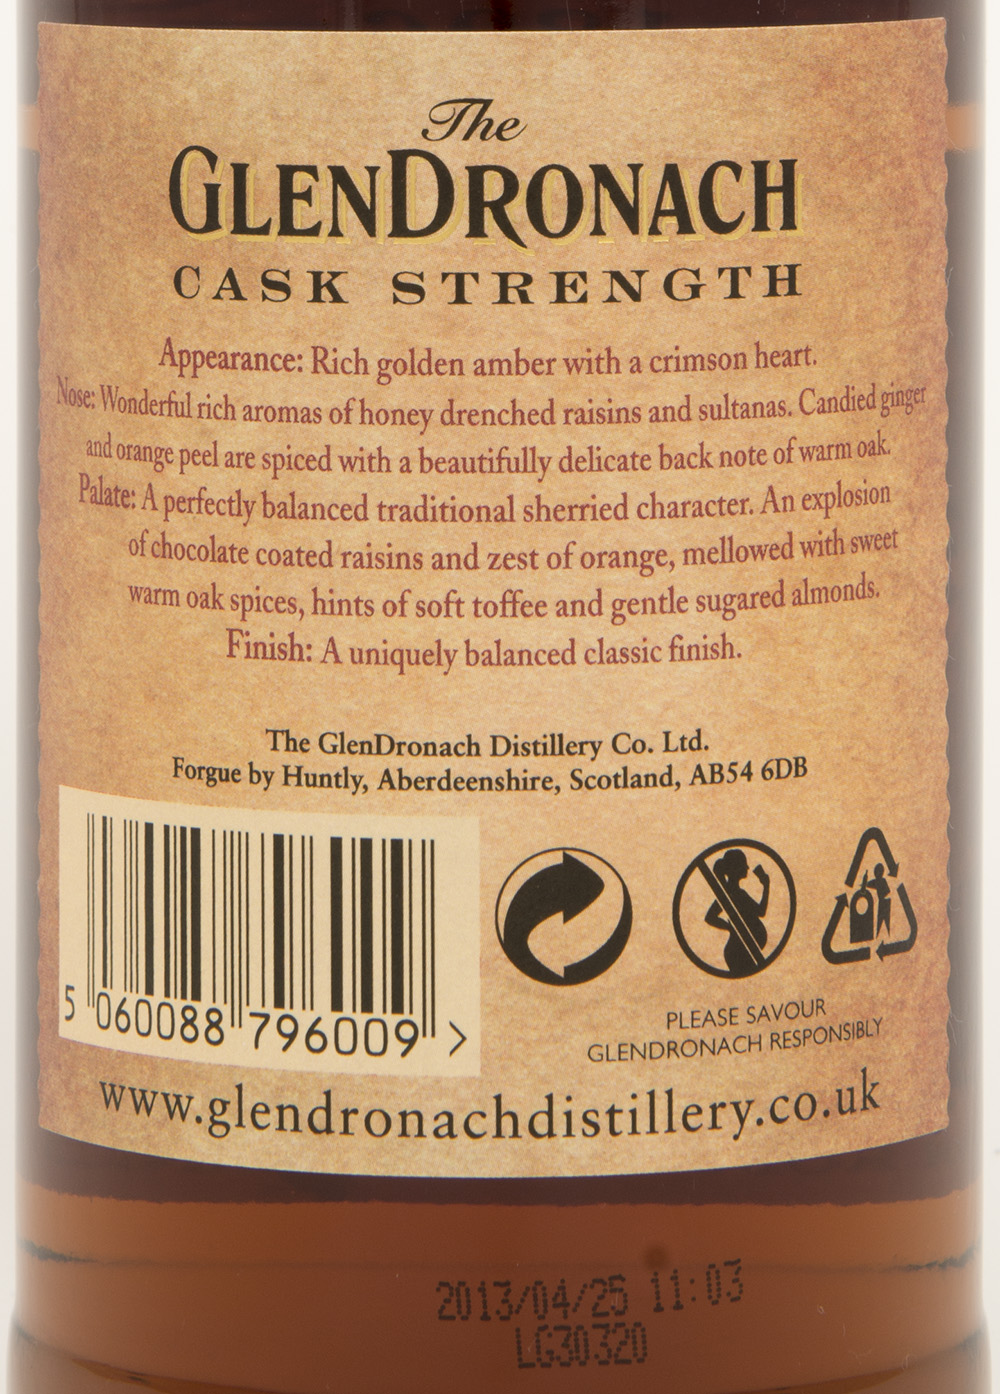 Billede: DSC_4837 - The Glendronach Cask Strength Batch 2 - back label.jpg